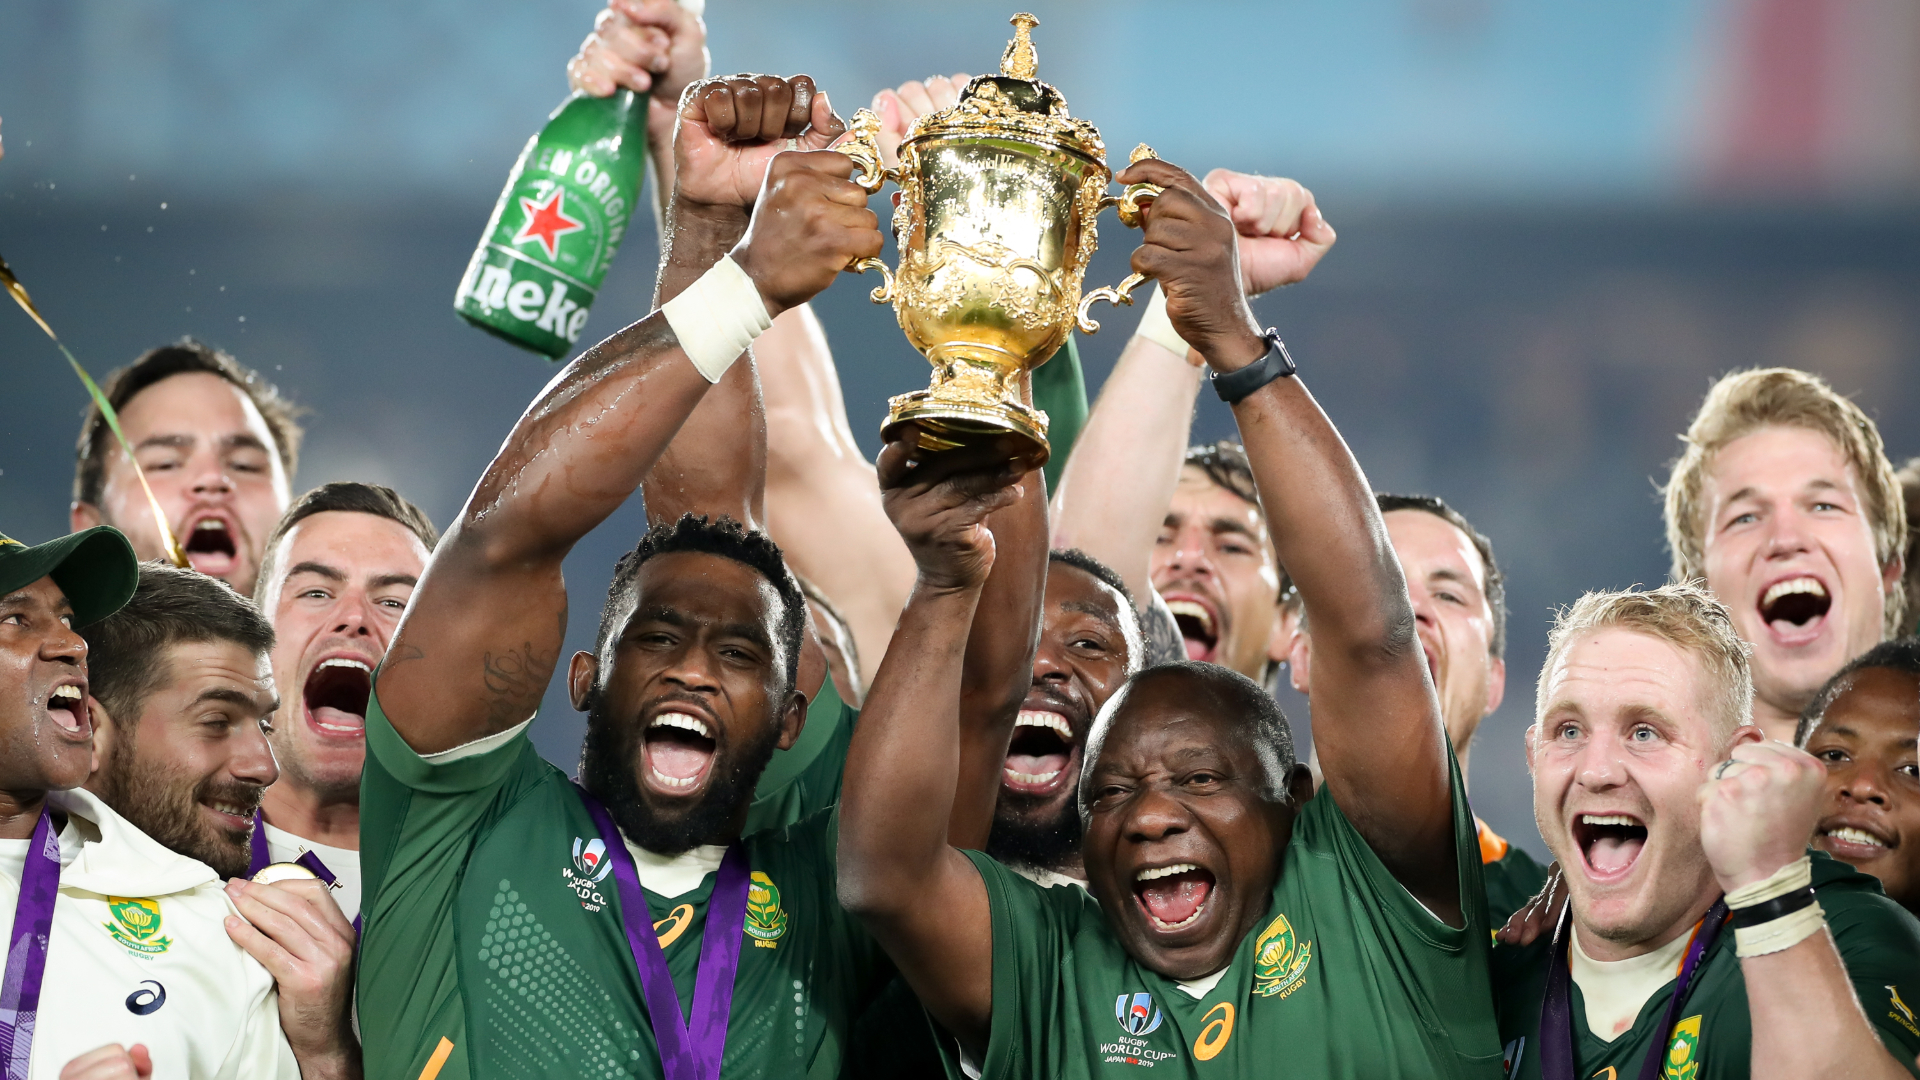 Cheslin came through so much – Van Niekerk reflects on Springboks' 'amazing' Rugby World Cup triumph